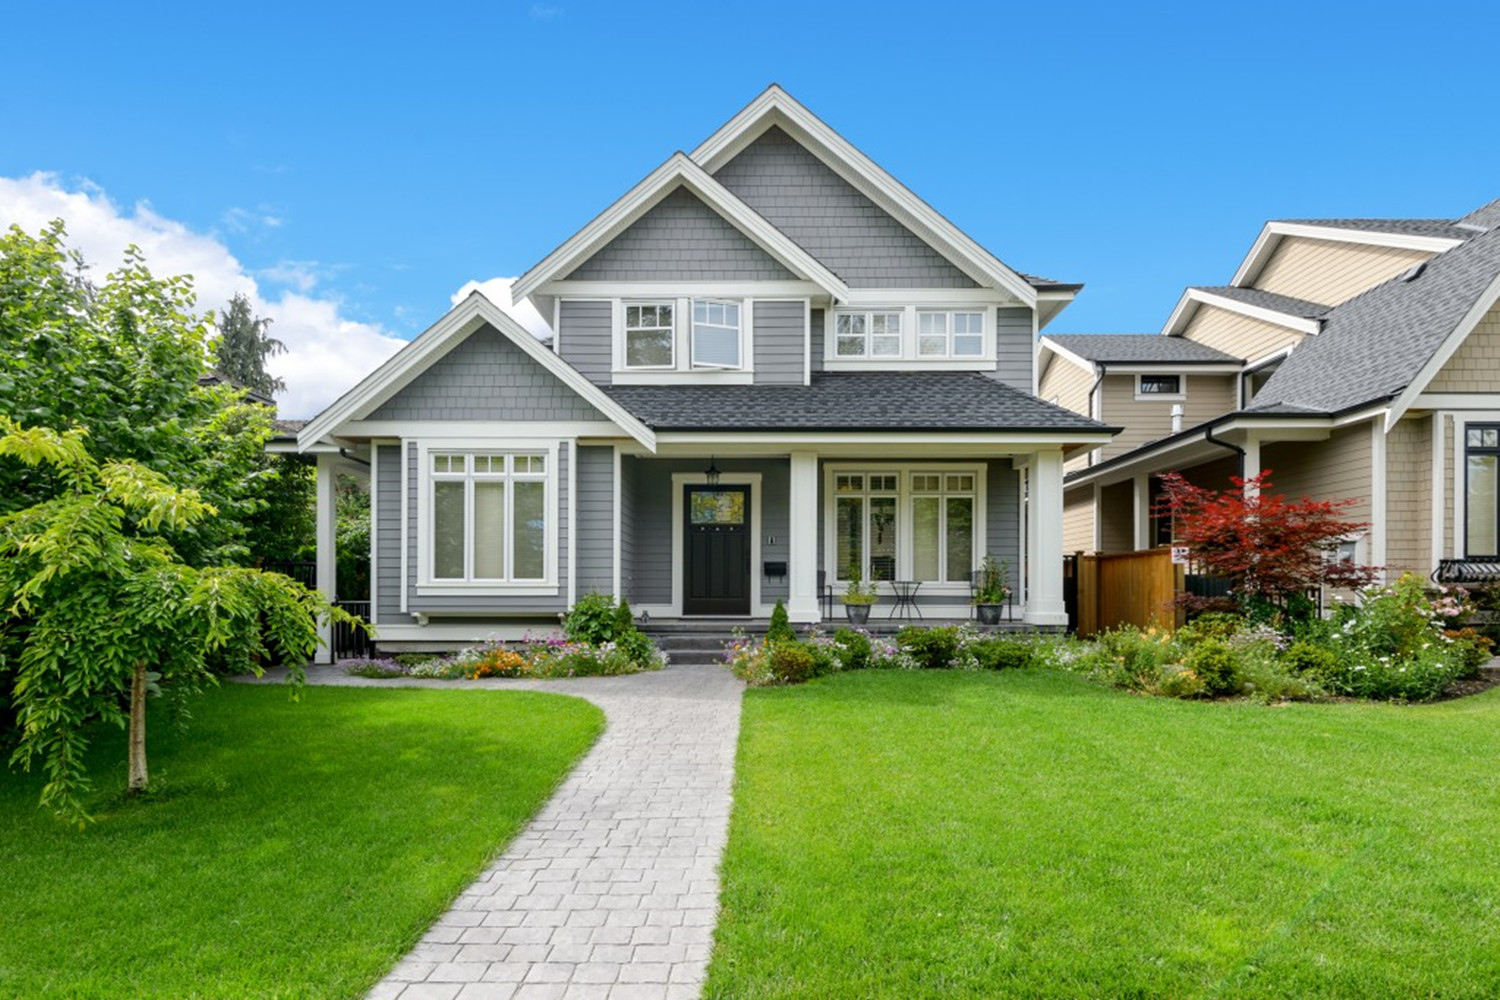 Home Improvement Tips To Update Your Home